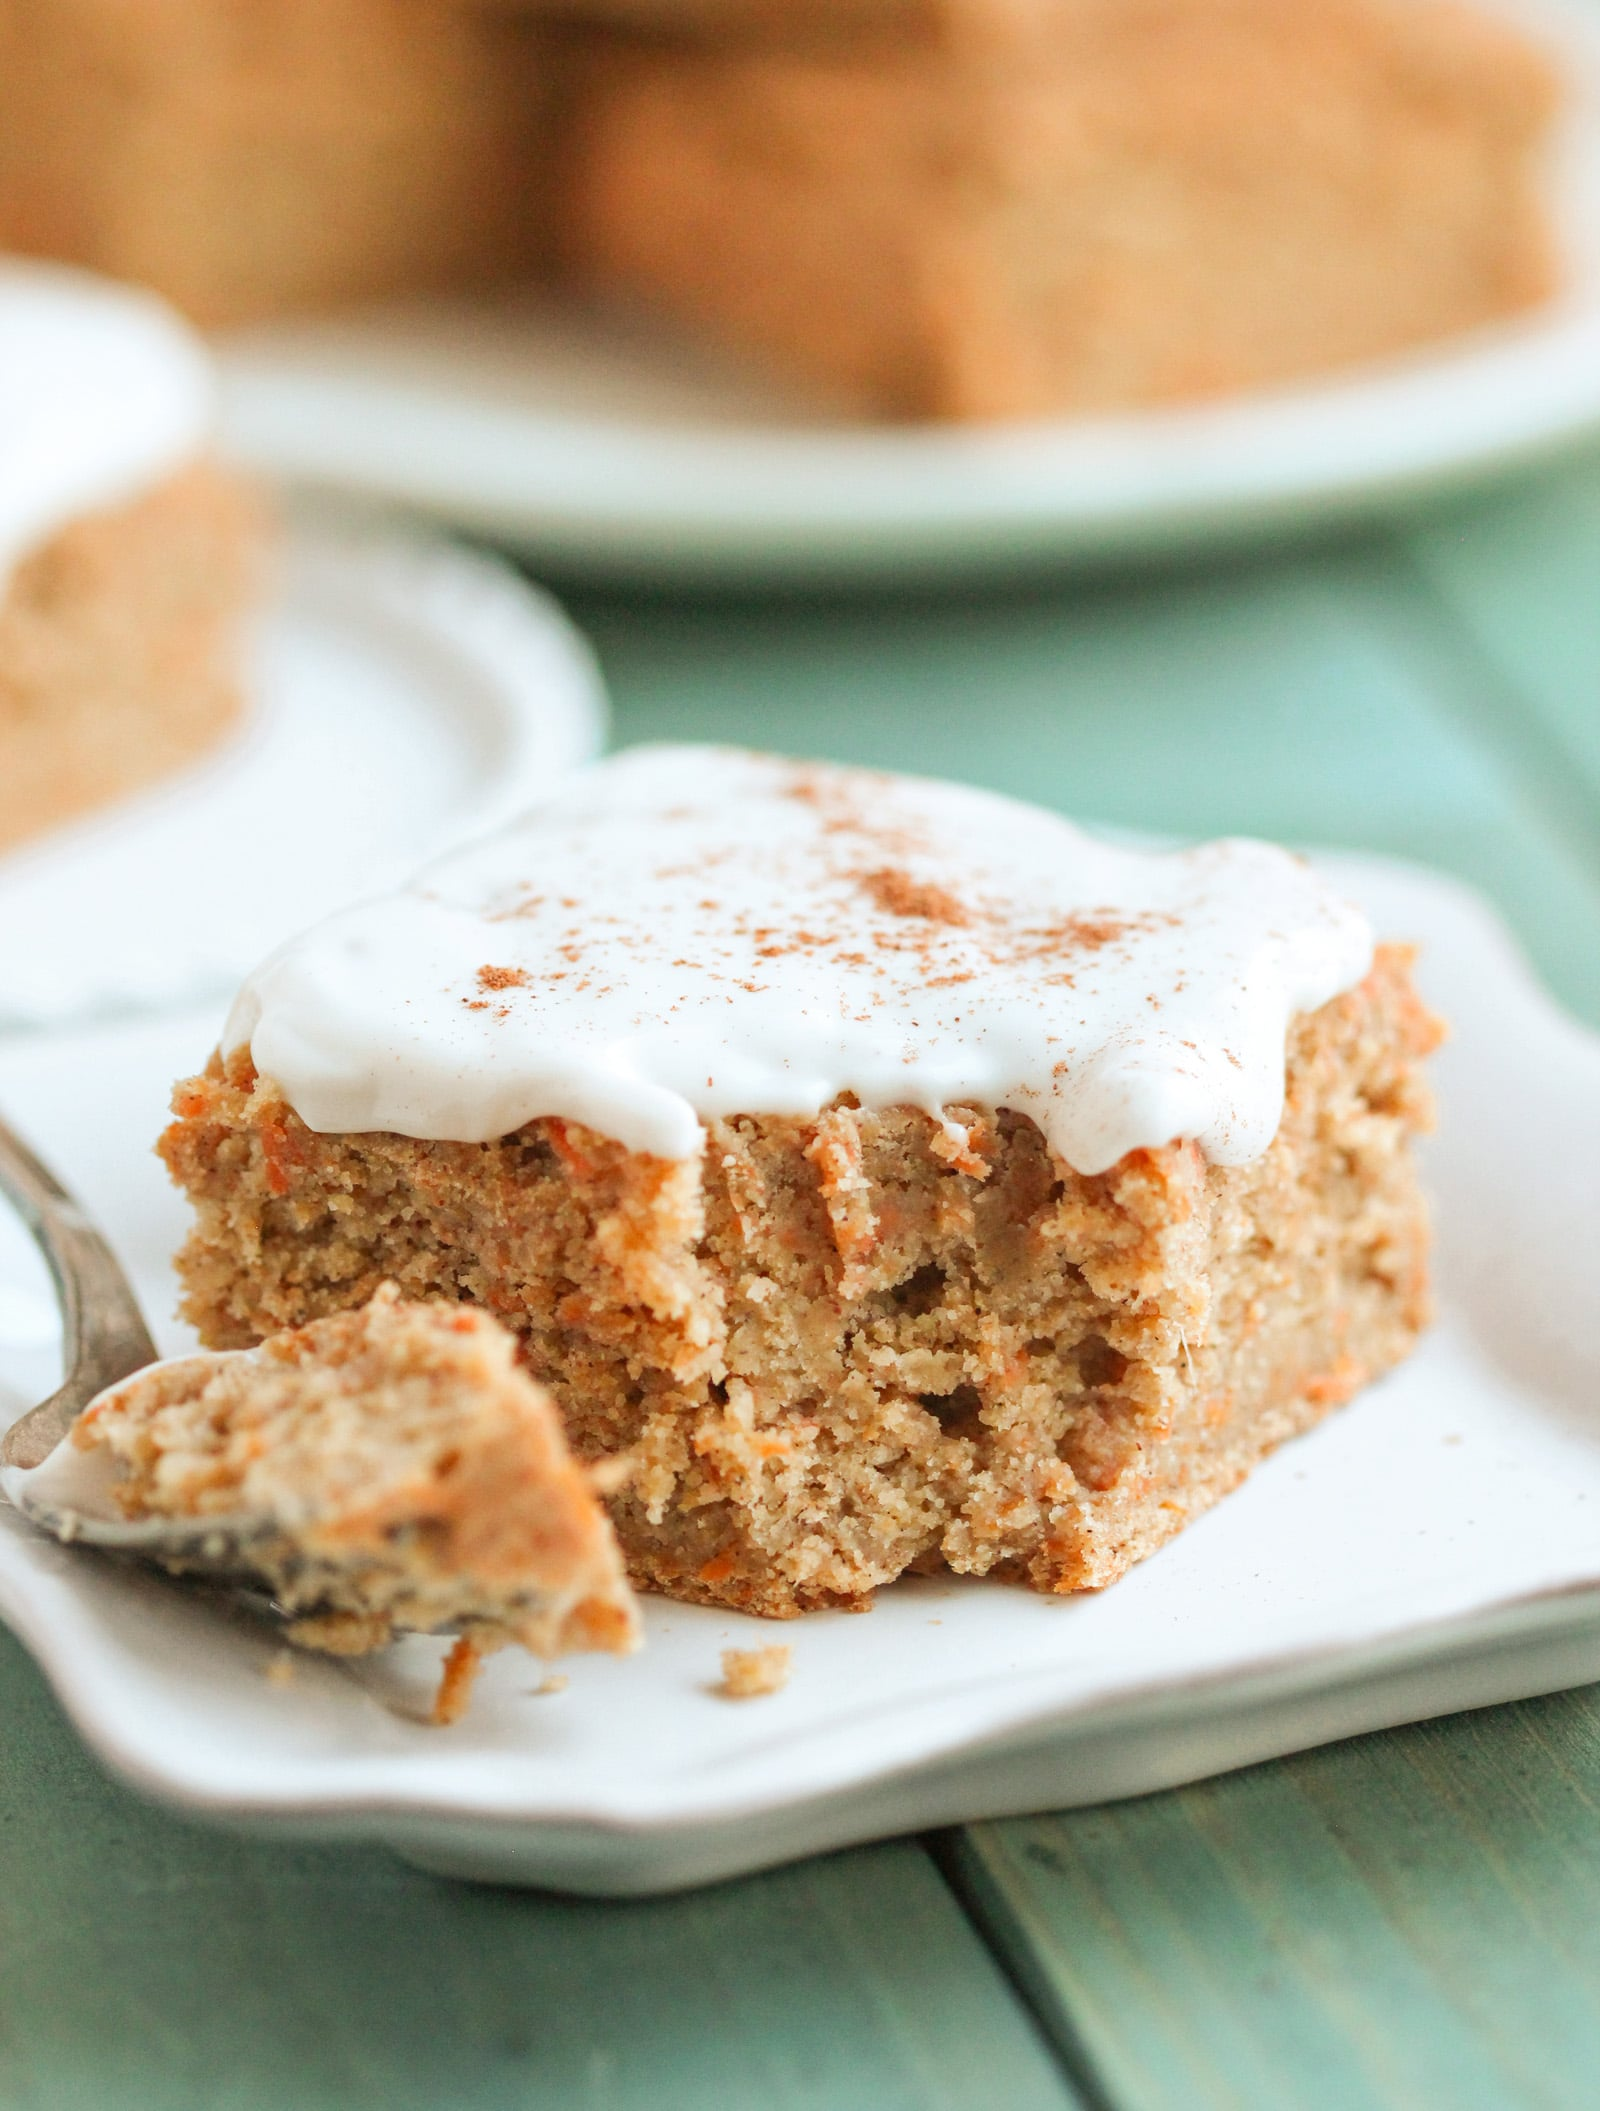 These Healthy Carrot Cake Blondies are sweet, dense, chewy, and PACKED with Carrot Cake flavor. Even with one cup of grated carrots, no one could detect any vegetables! And we definitely wouldn't have ever guessed it's sugar free, low fat, gluten free, and vegan. -- Healthy Dessert Recipes at the Desserts With Benefits Blog (www.DessertsWithBenefits.com)